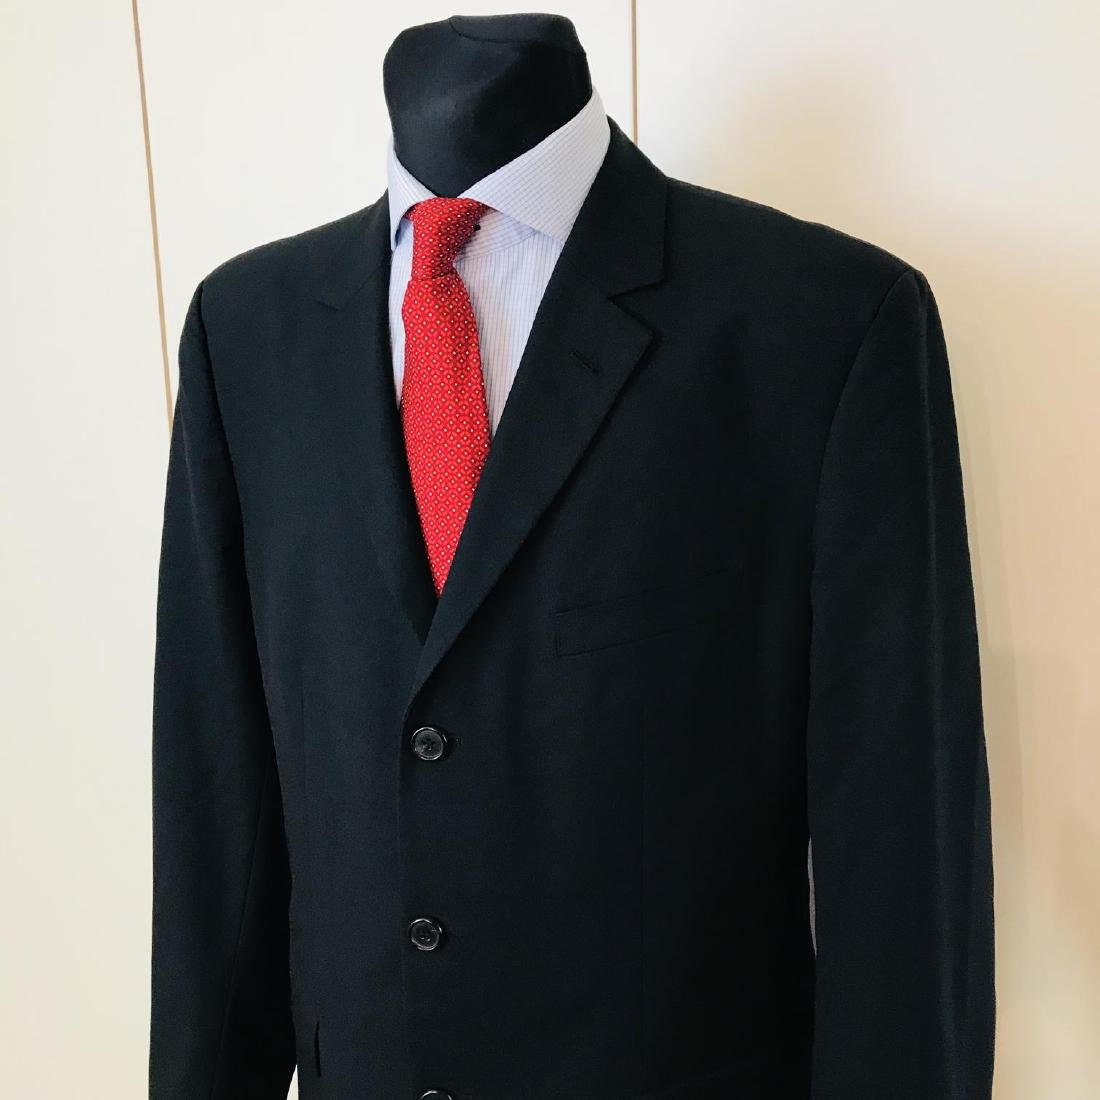 Men's HUGO BOSS Blazer Jacket Size US 42 EUR 52 - 2